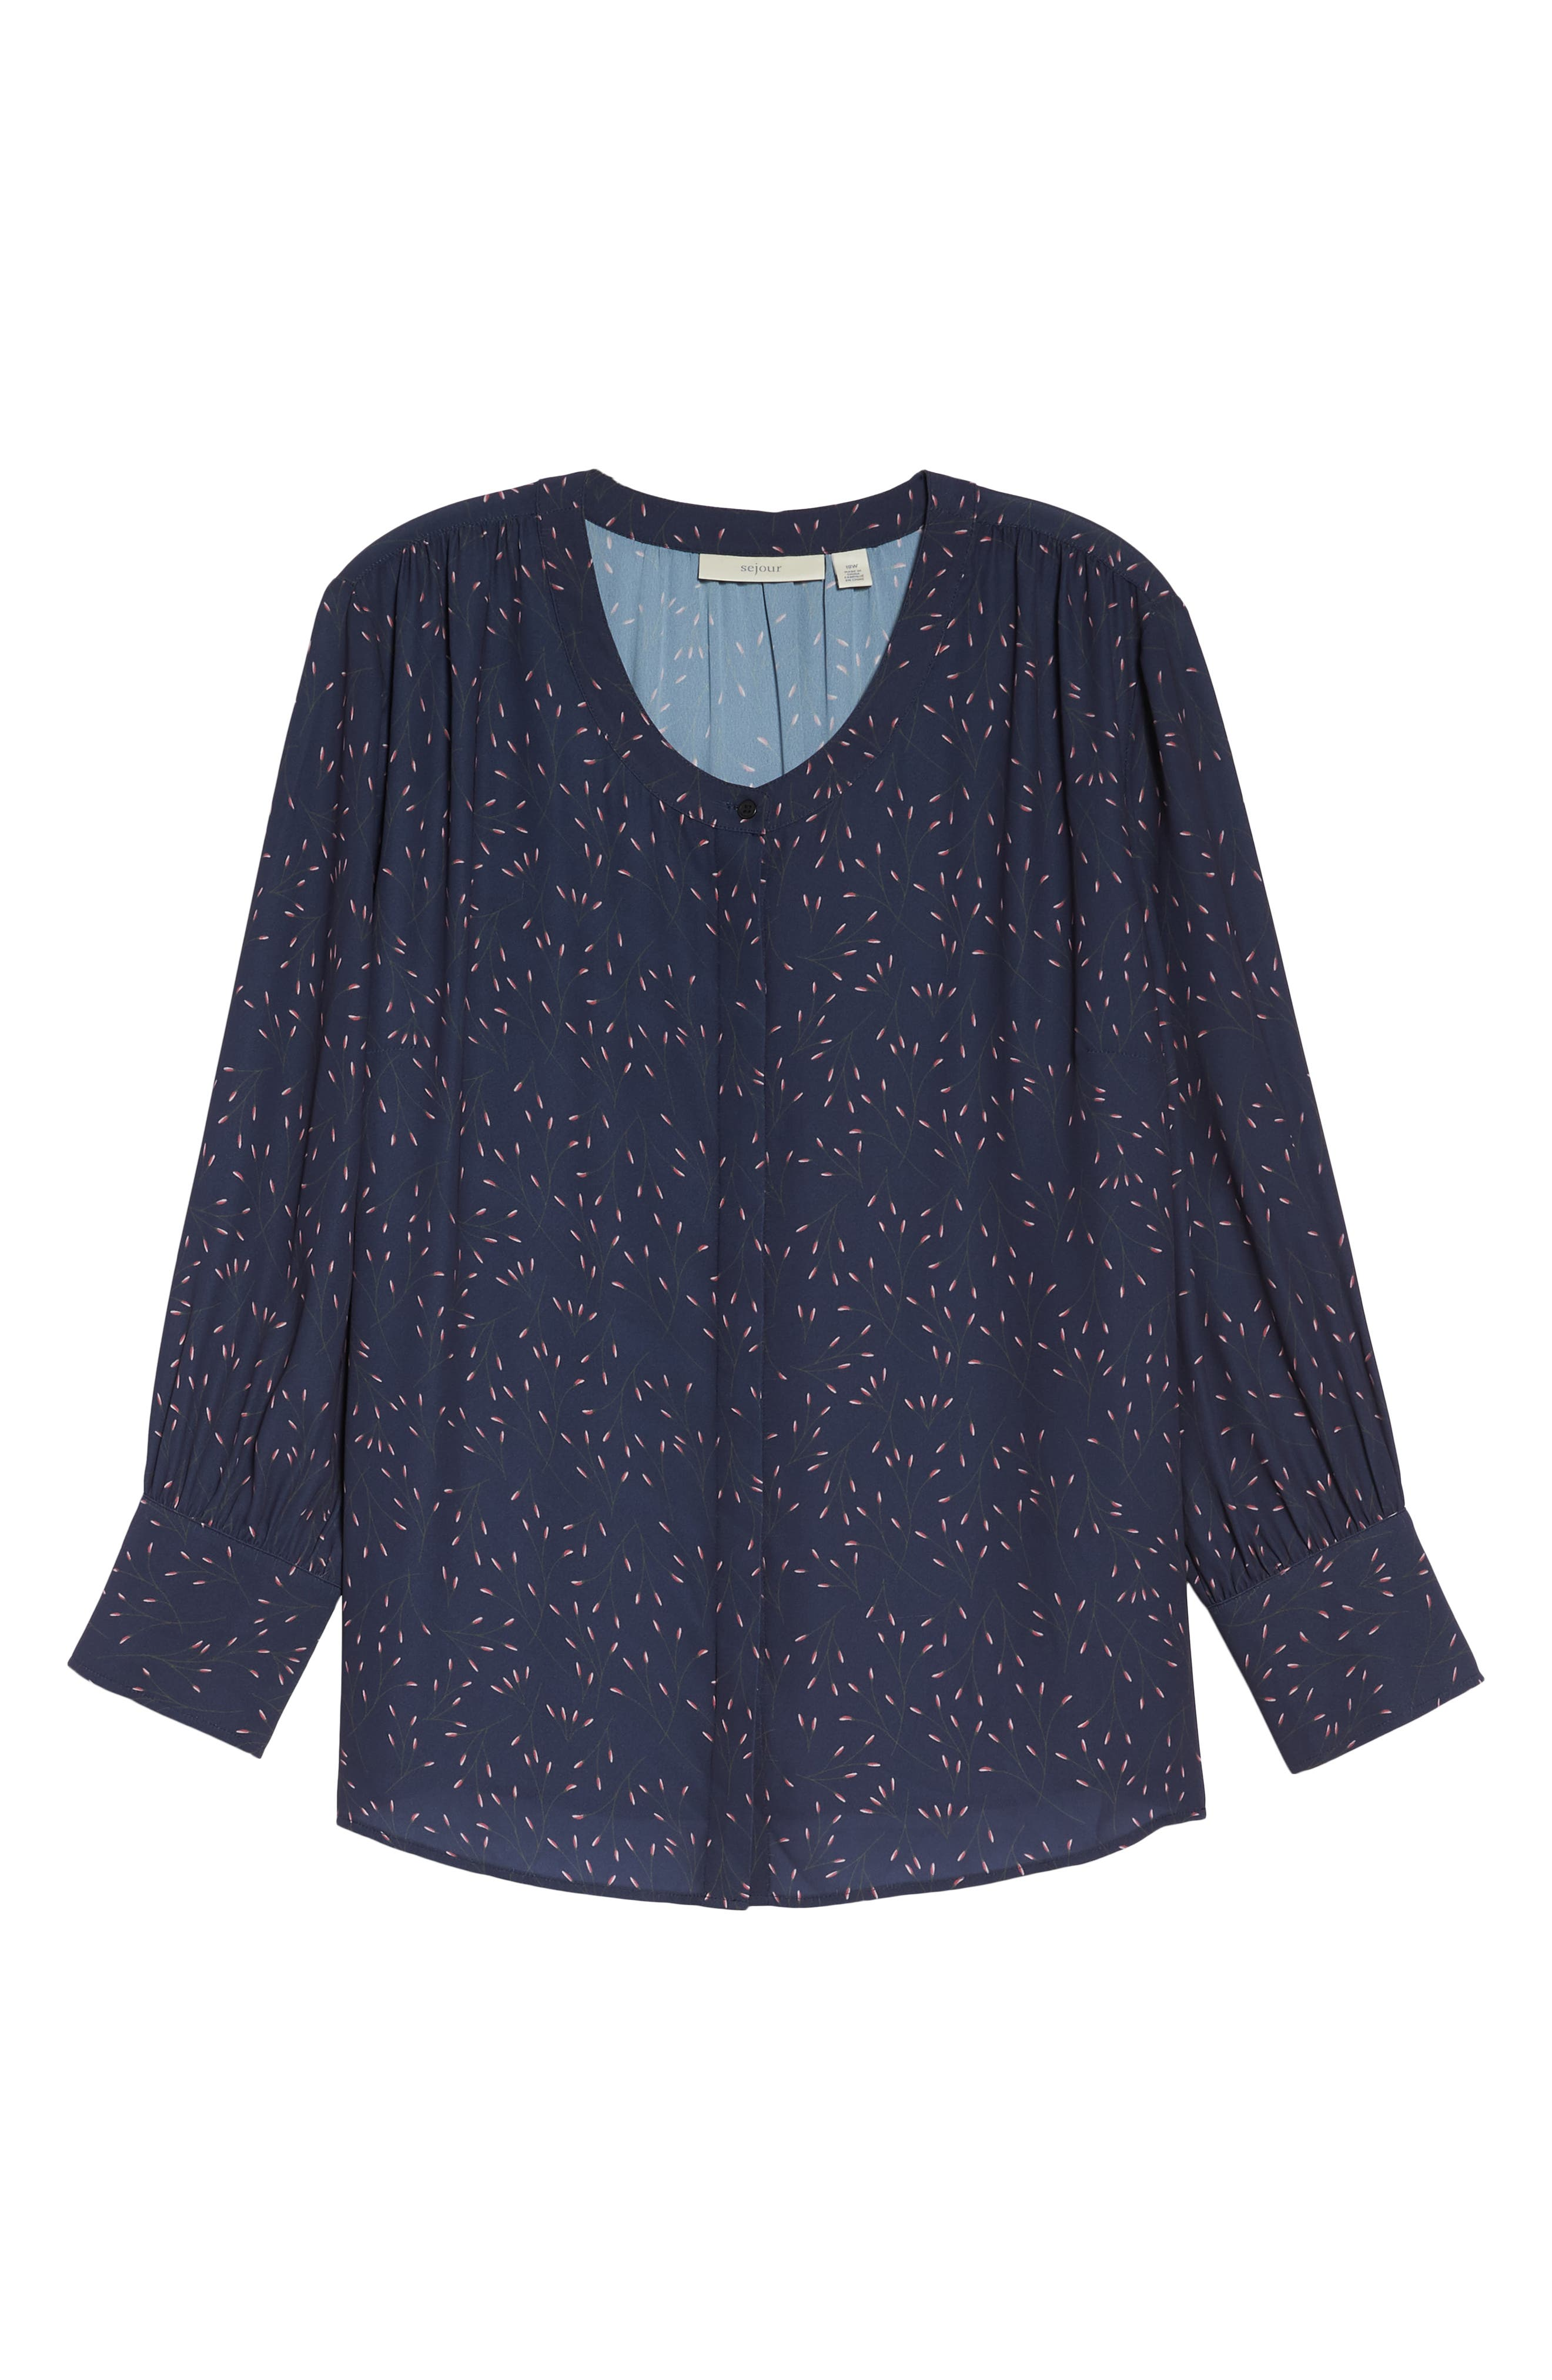 Placket Front Blouse,                             Alternate thumbnail 6, color,                             NAVY WHISPERING WILLOWS PRINT